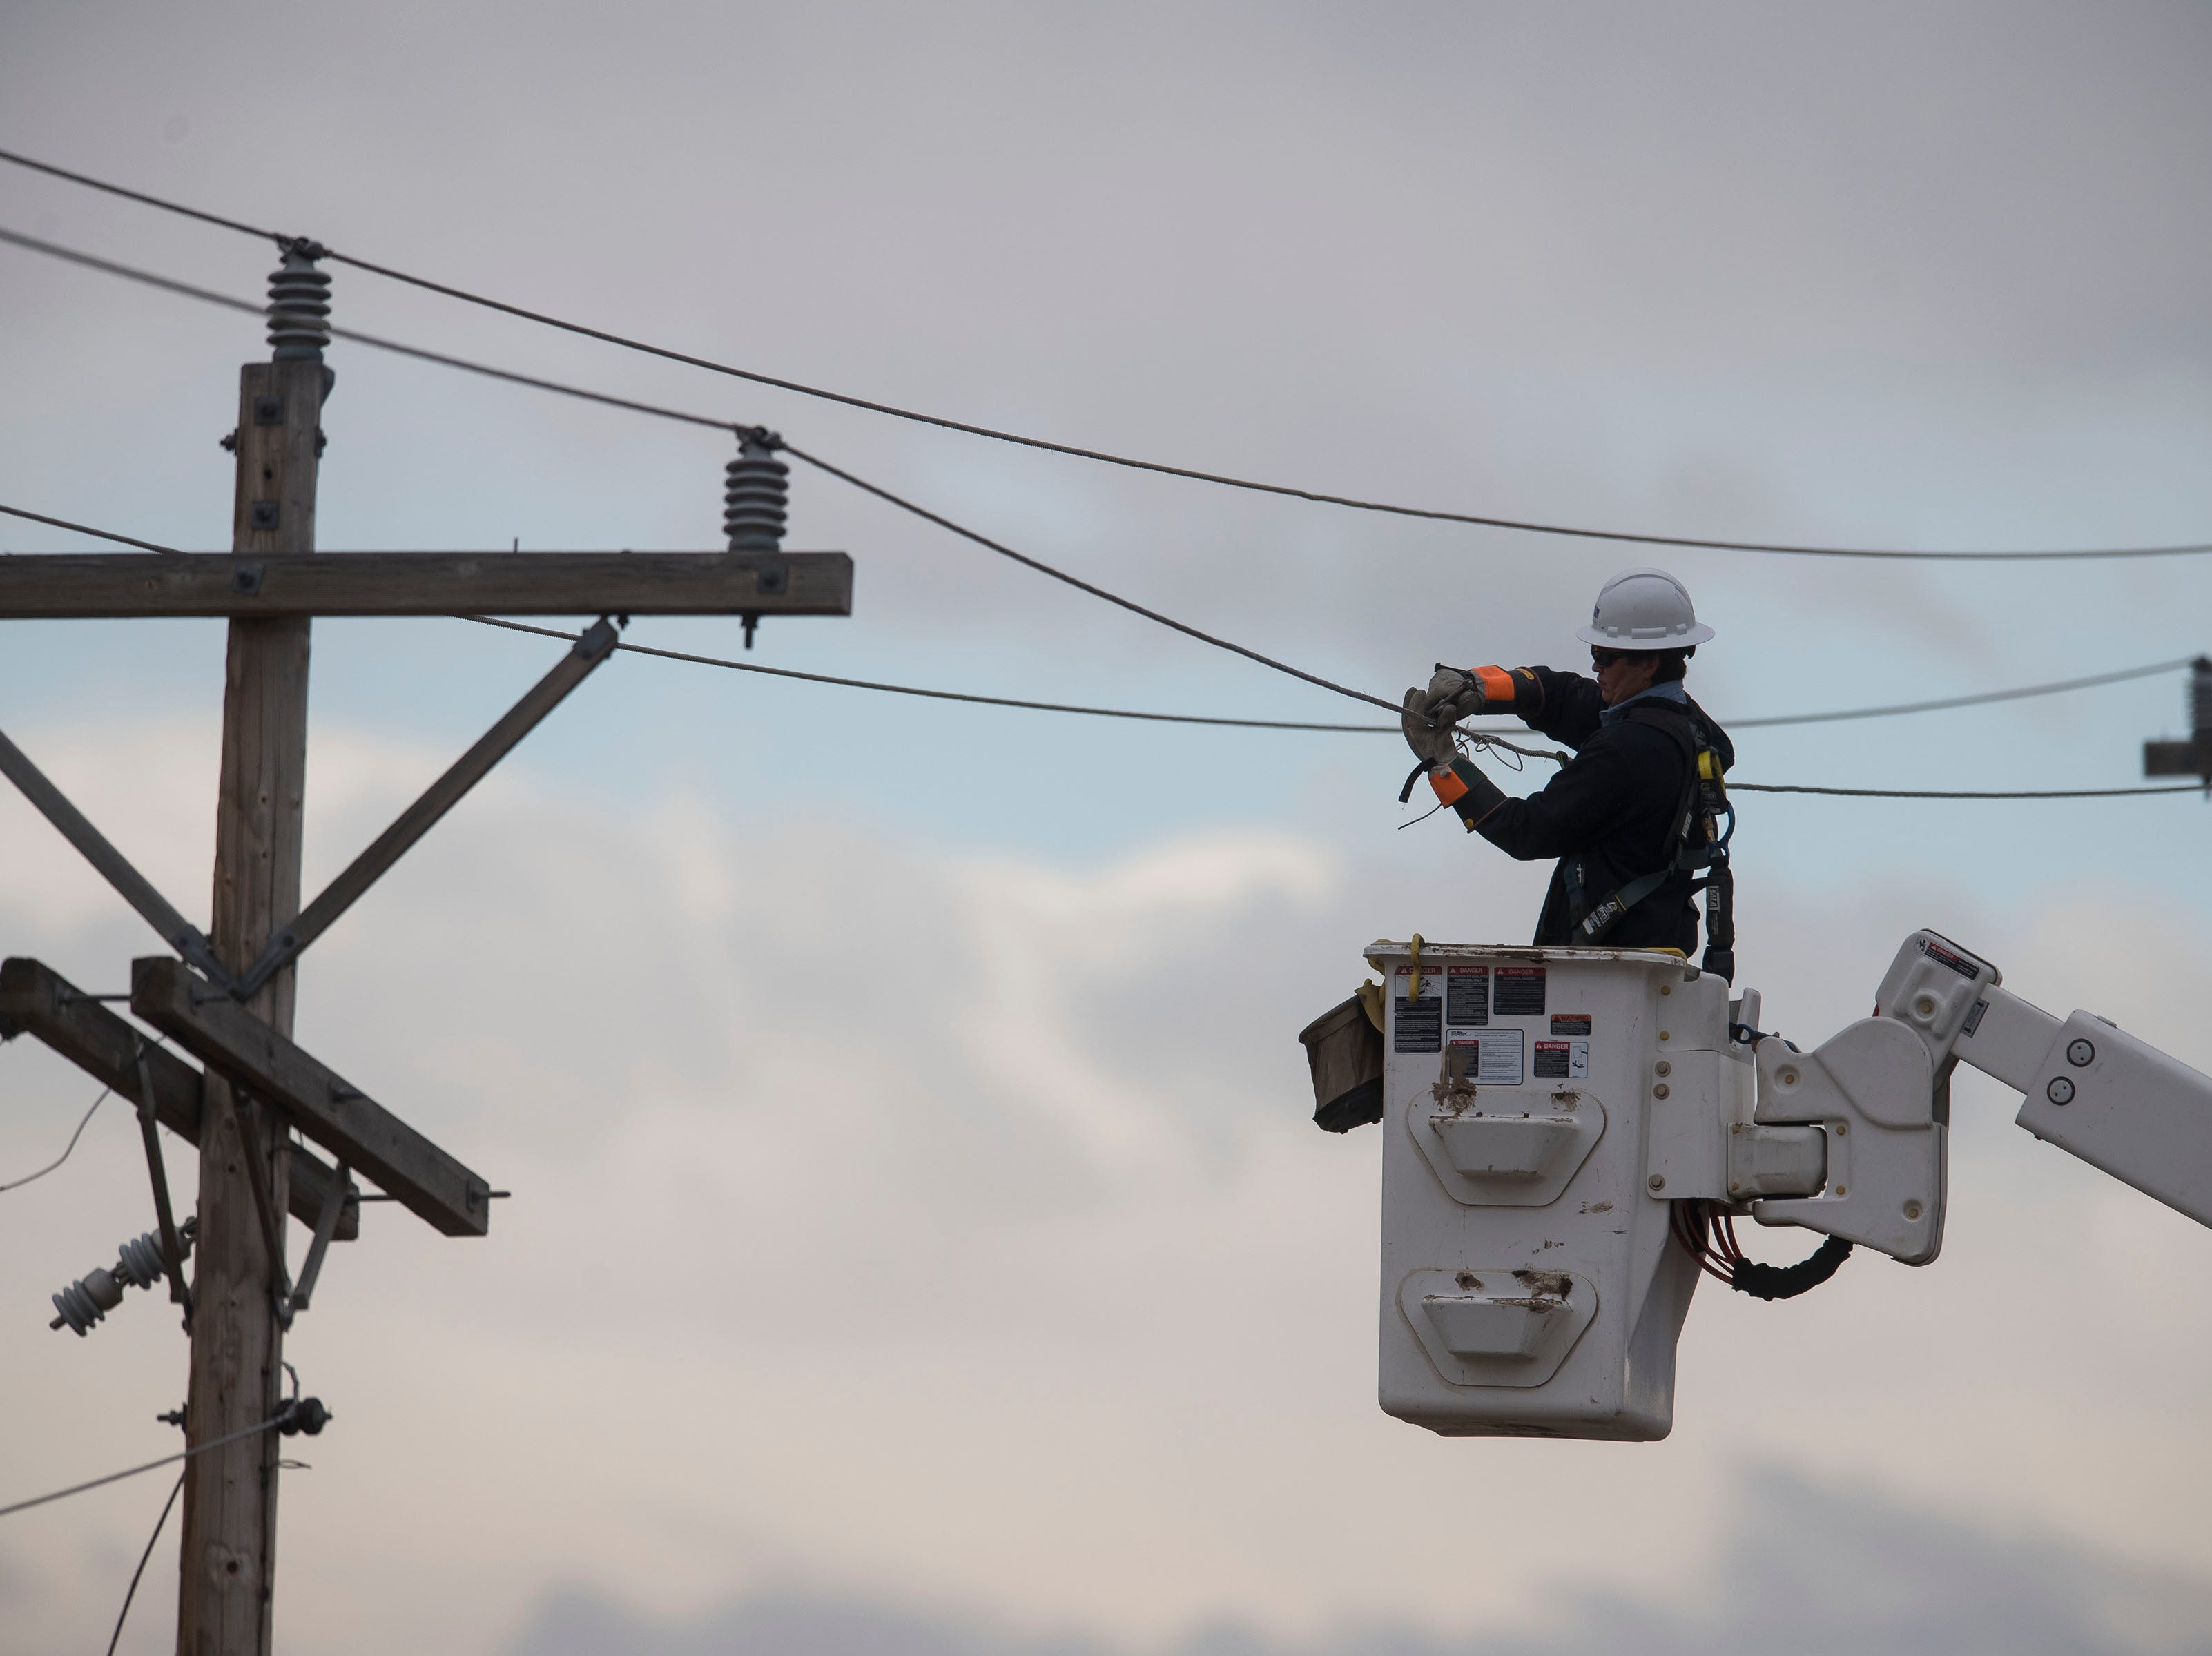 A lineman repairs power lines after a single-engine plane crashed Saturday, March 23, 2019, west of the intersection of East County Road 30 and Boyd Lake Avenue in Fort Collins, Colo. Three people were injured.